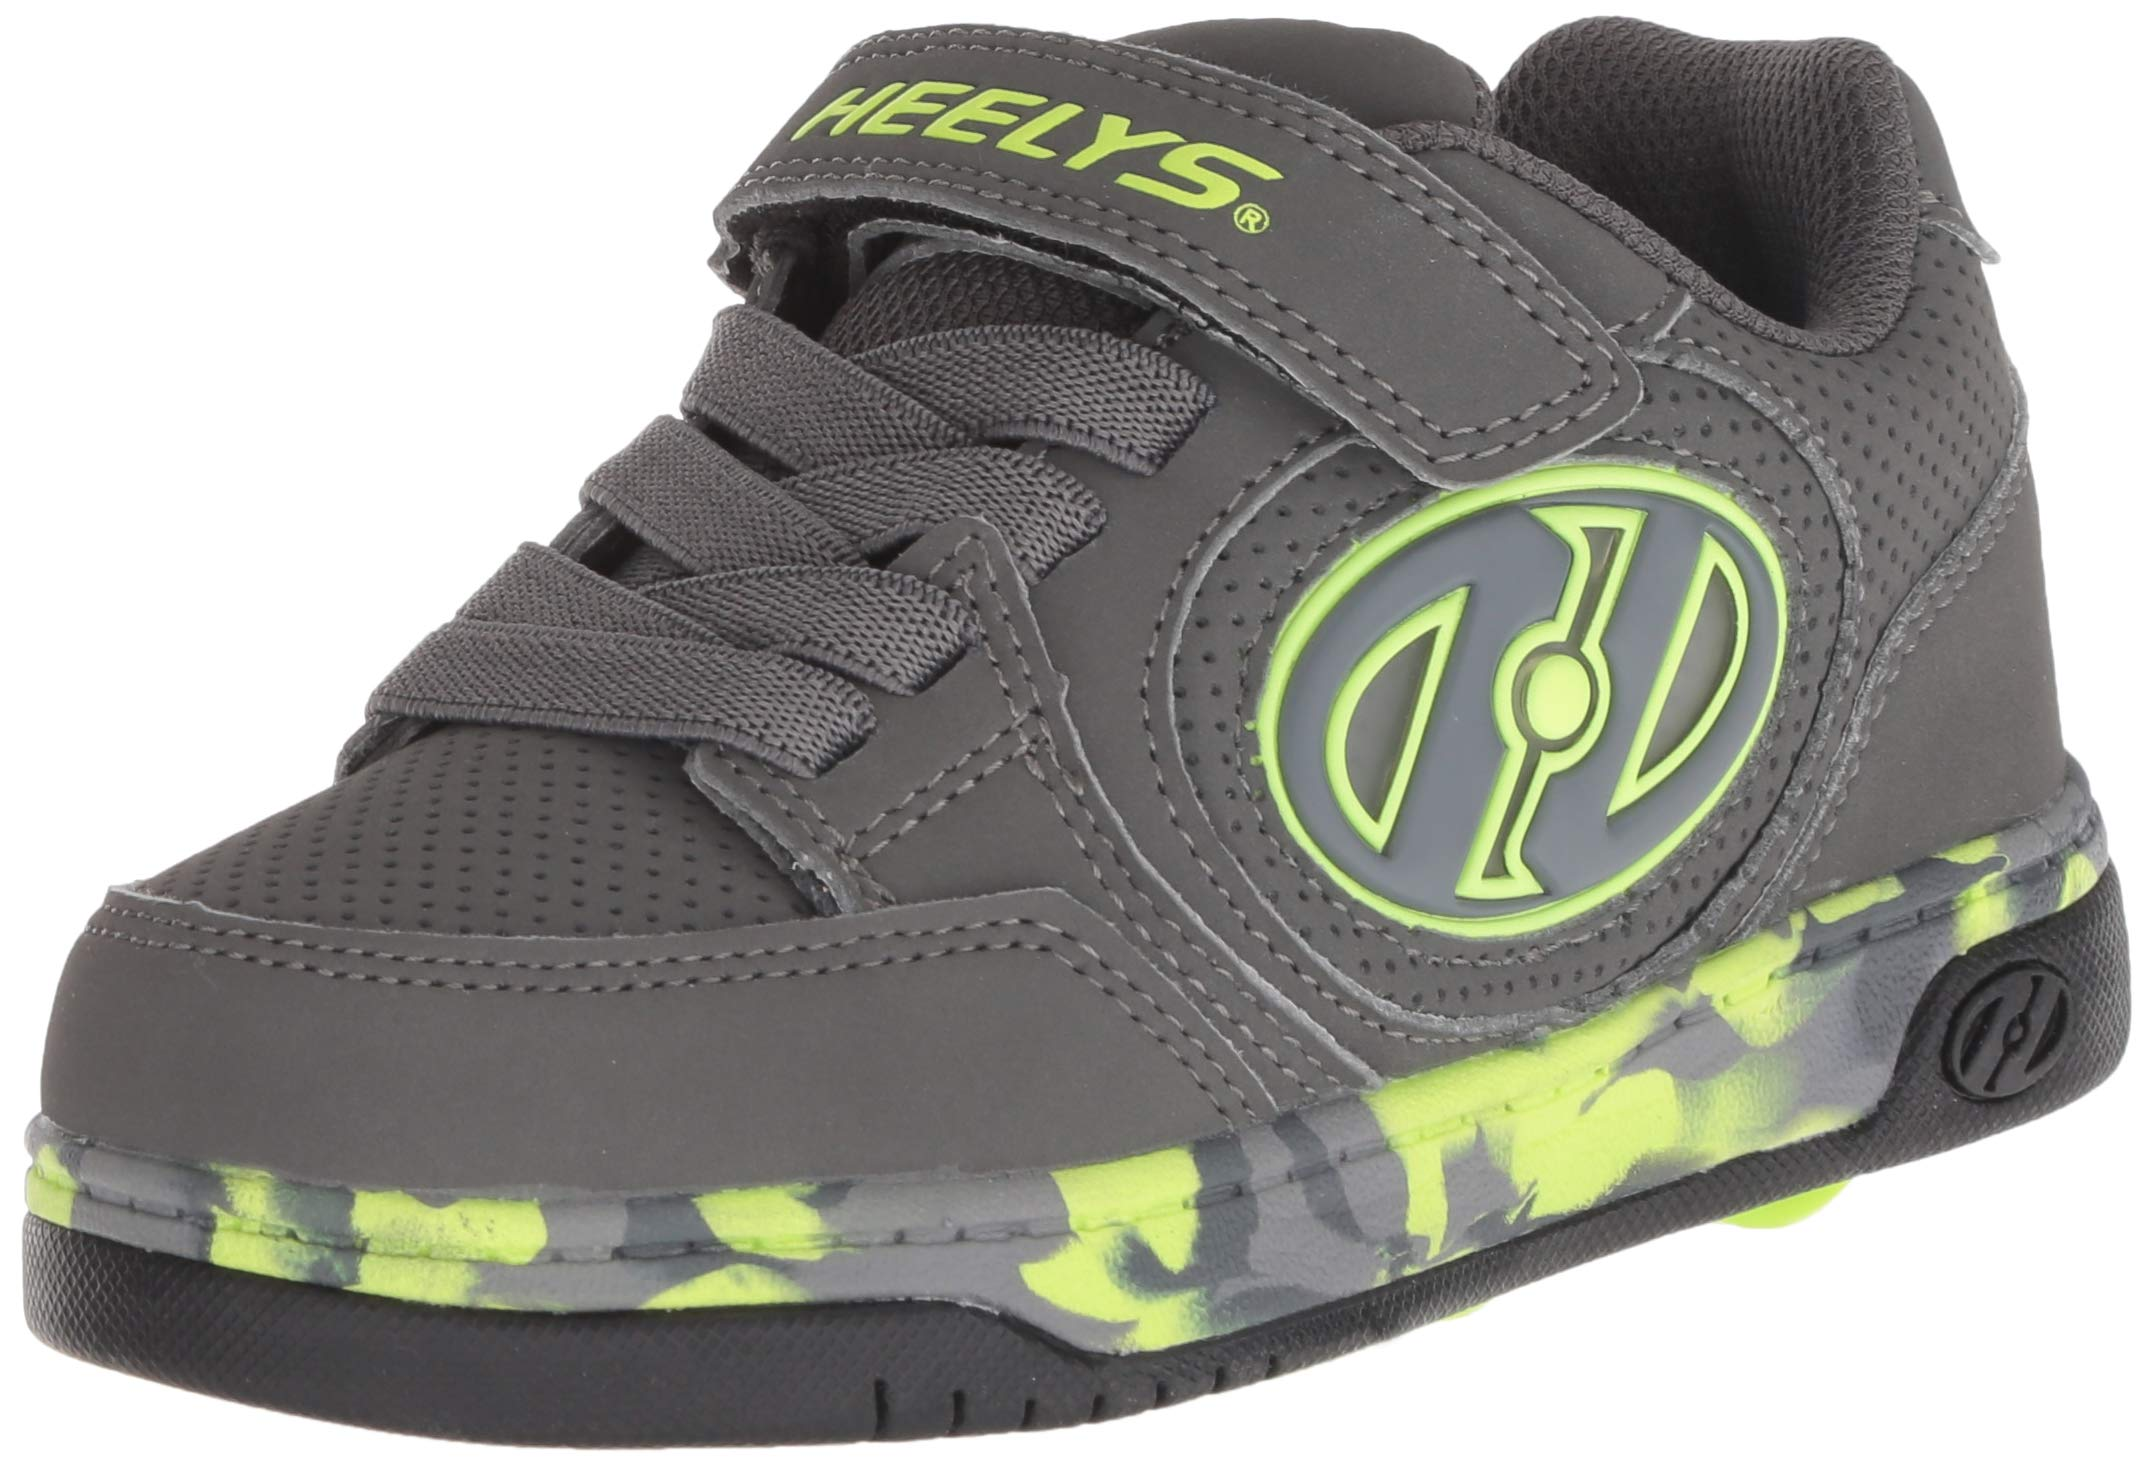 Heelys Kids' Plus X2 Lighted Tennis Shoe, Charcoal/Bright Yellow/Confetti, 1 M US Little Kid